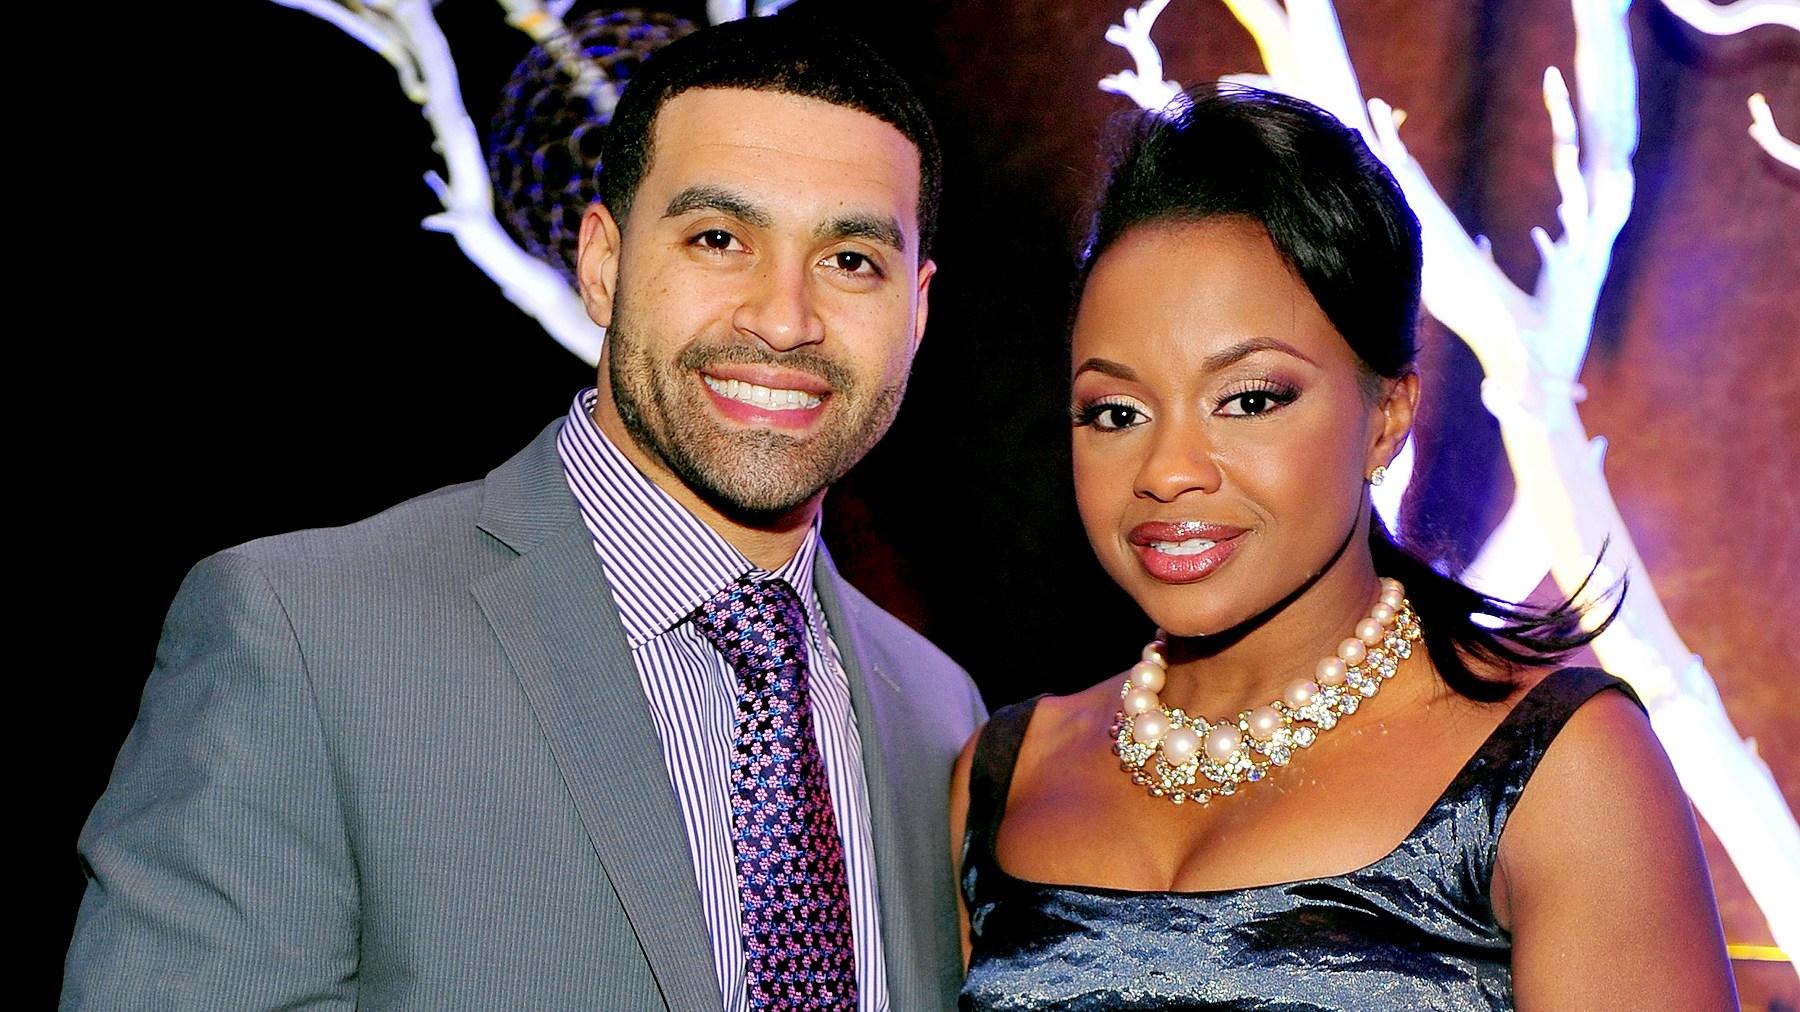 Apollo Nida and Phaedra Parks attend the Captain Planet Foundation Annual benefit gala at the Georgia Aquarium on December 9, 2011 in Atlanta, Georgia.